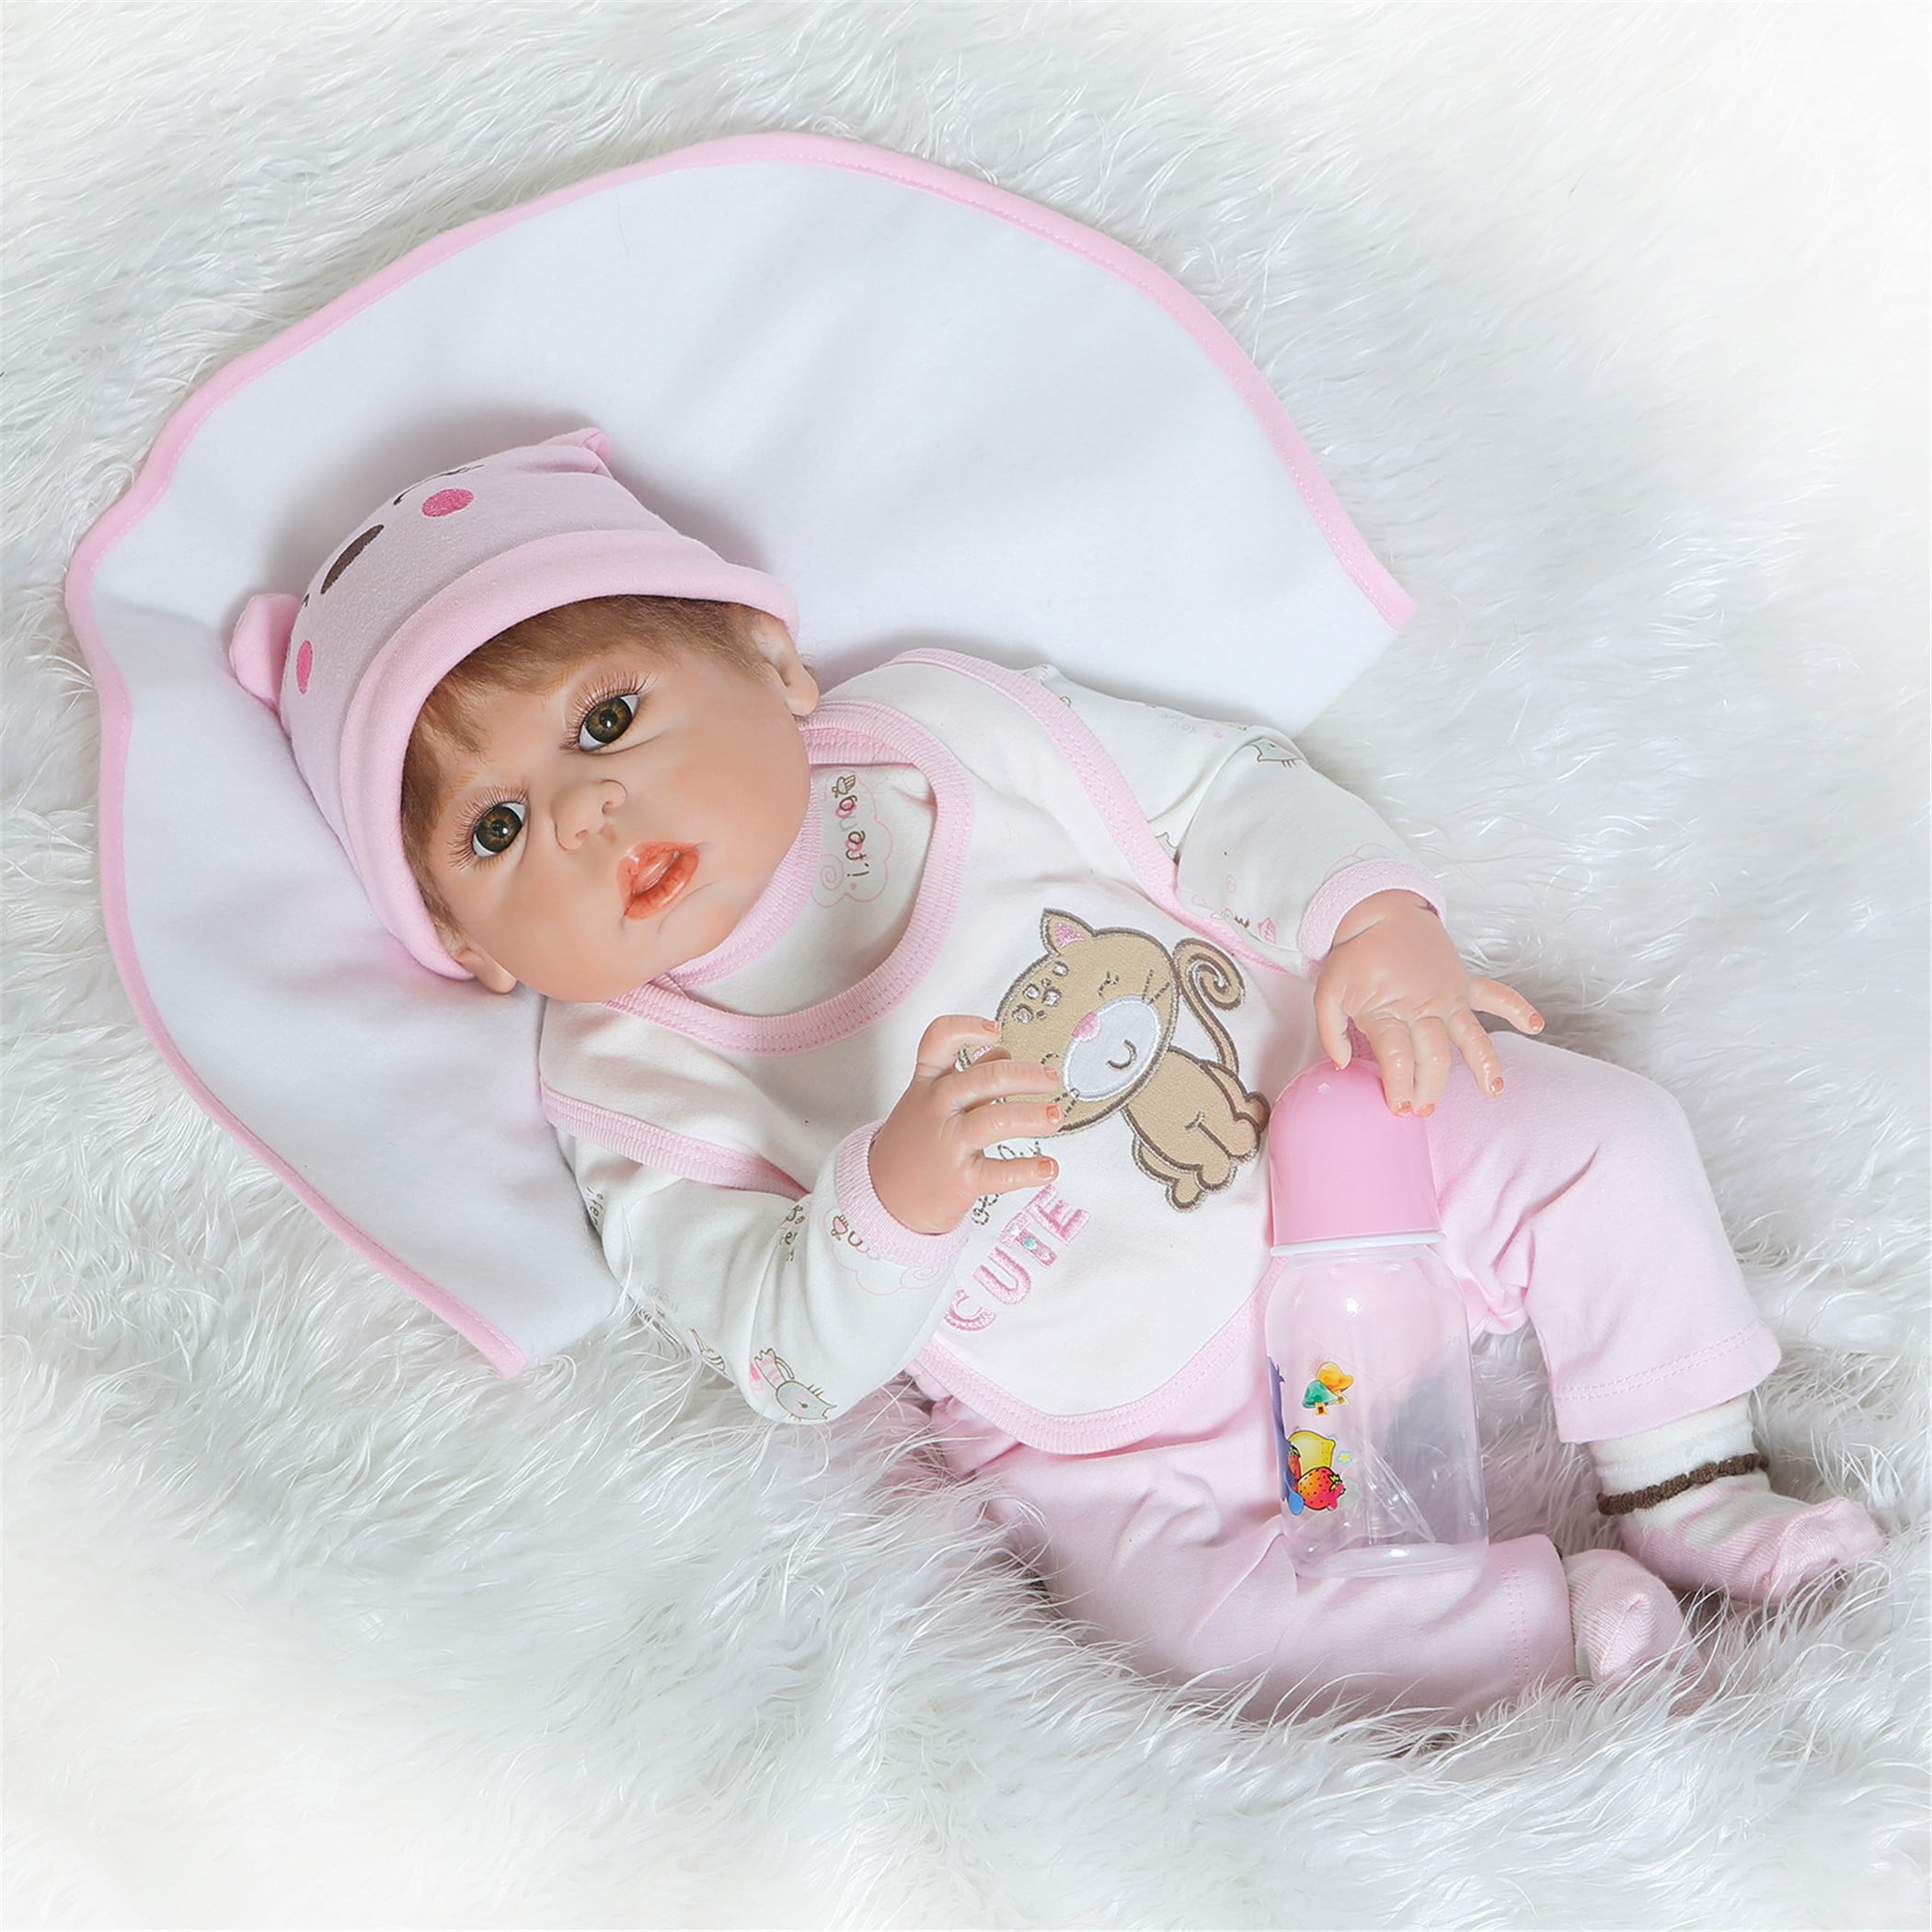 NPK Collection Reborn Baby Doll Soft Silicone vinyl 22inch ...